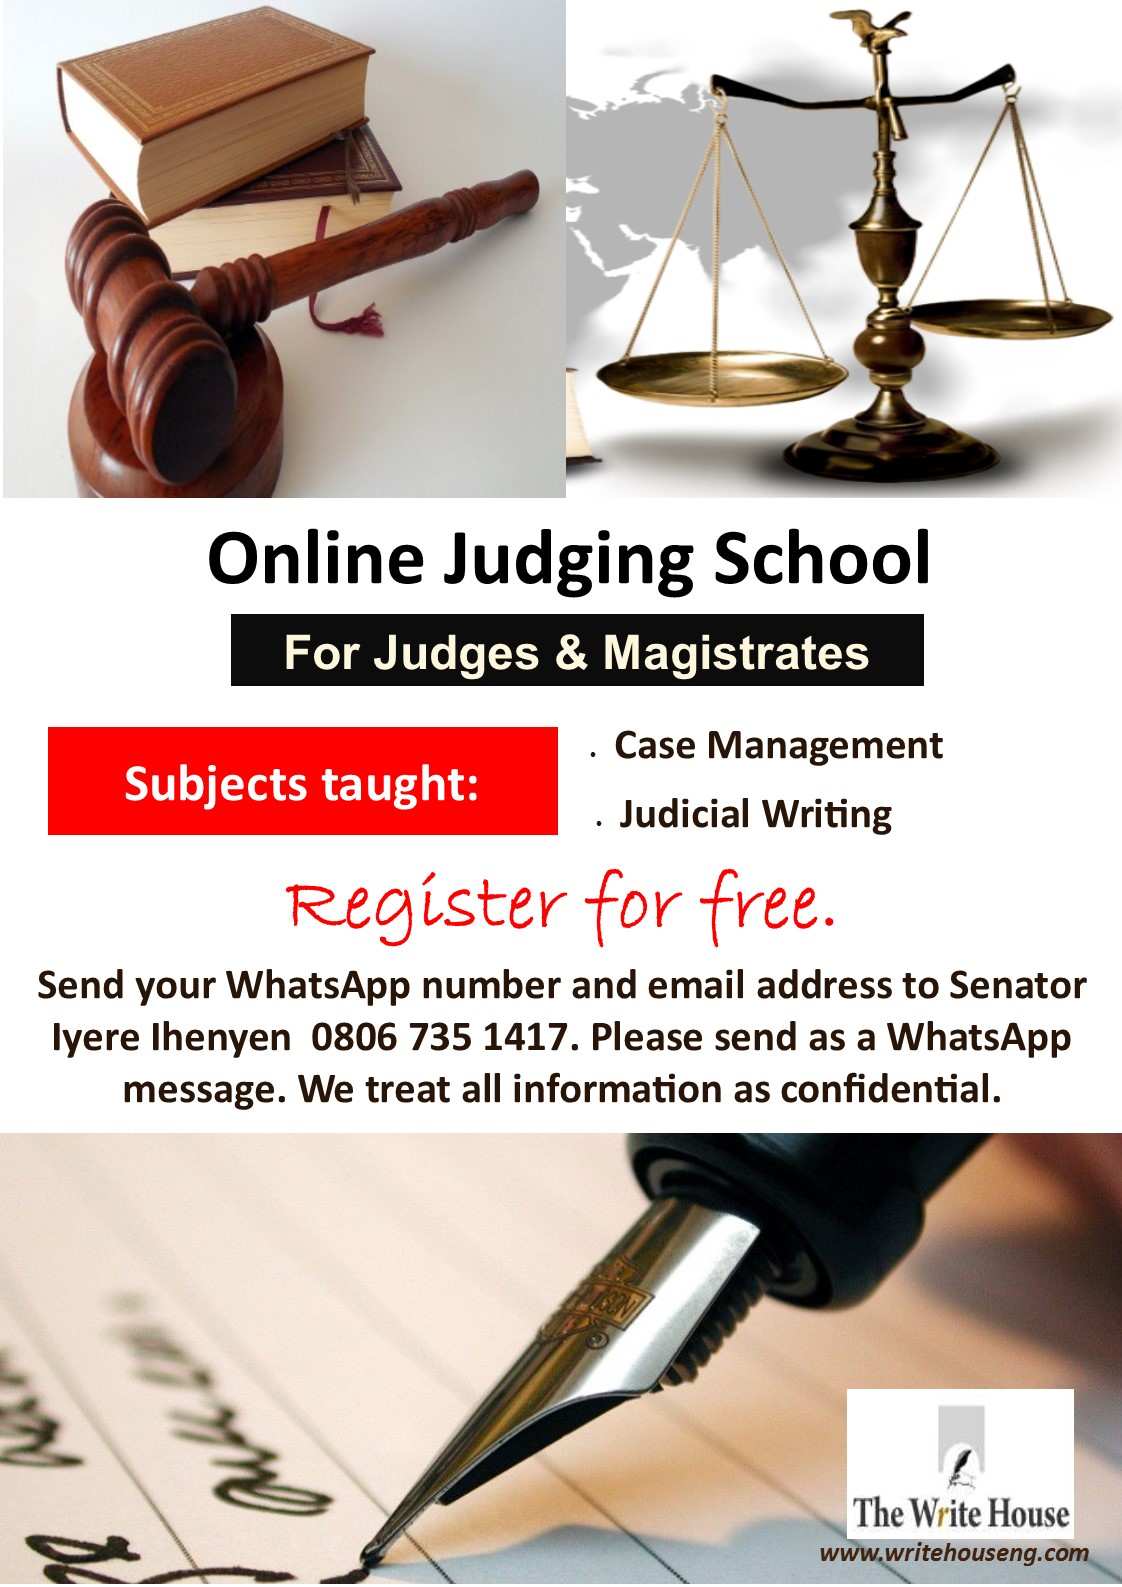 Free Online Judging School for Judges and Magistrates on WhatsApp